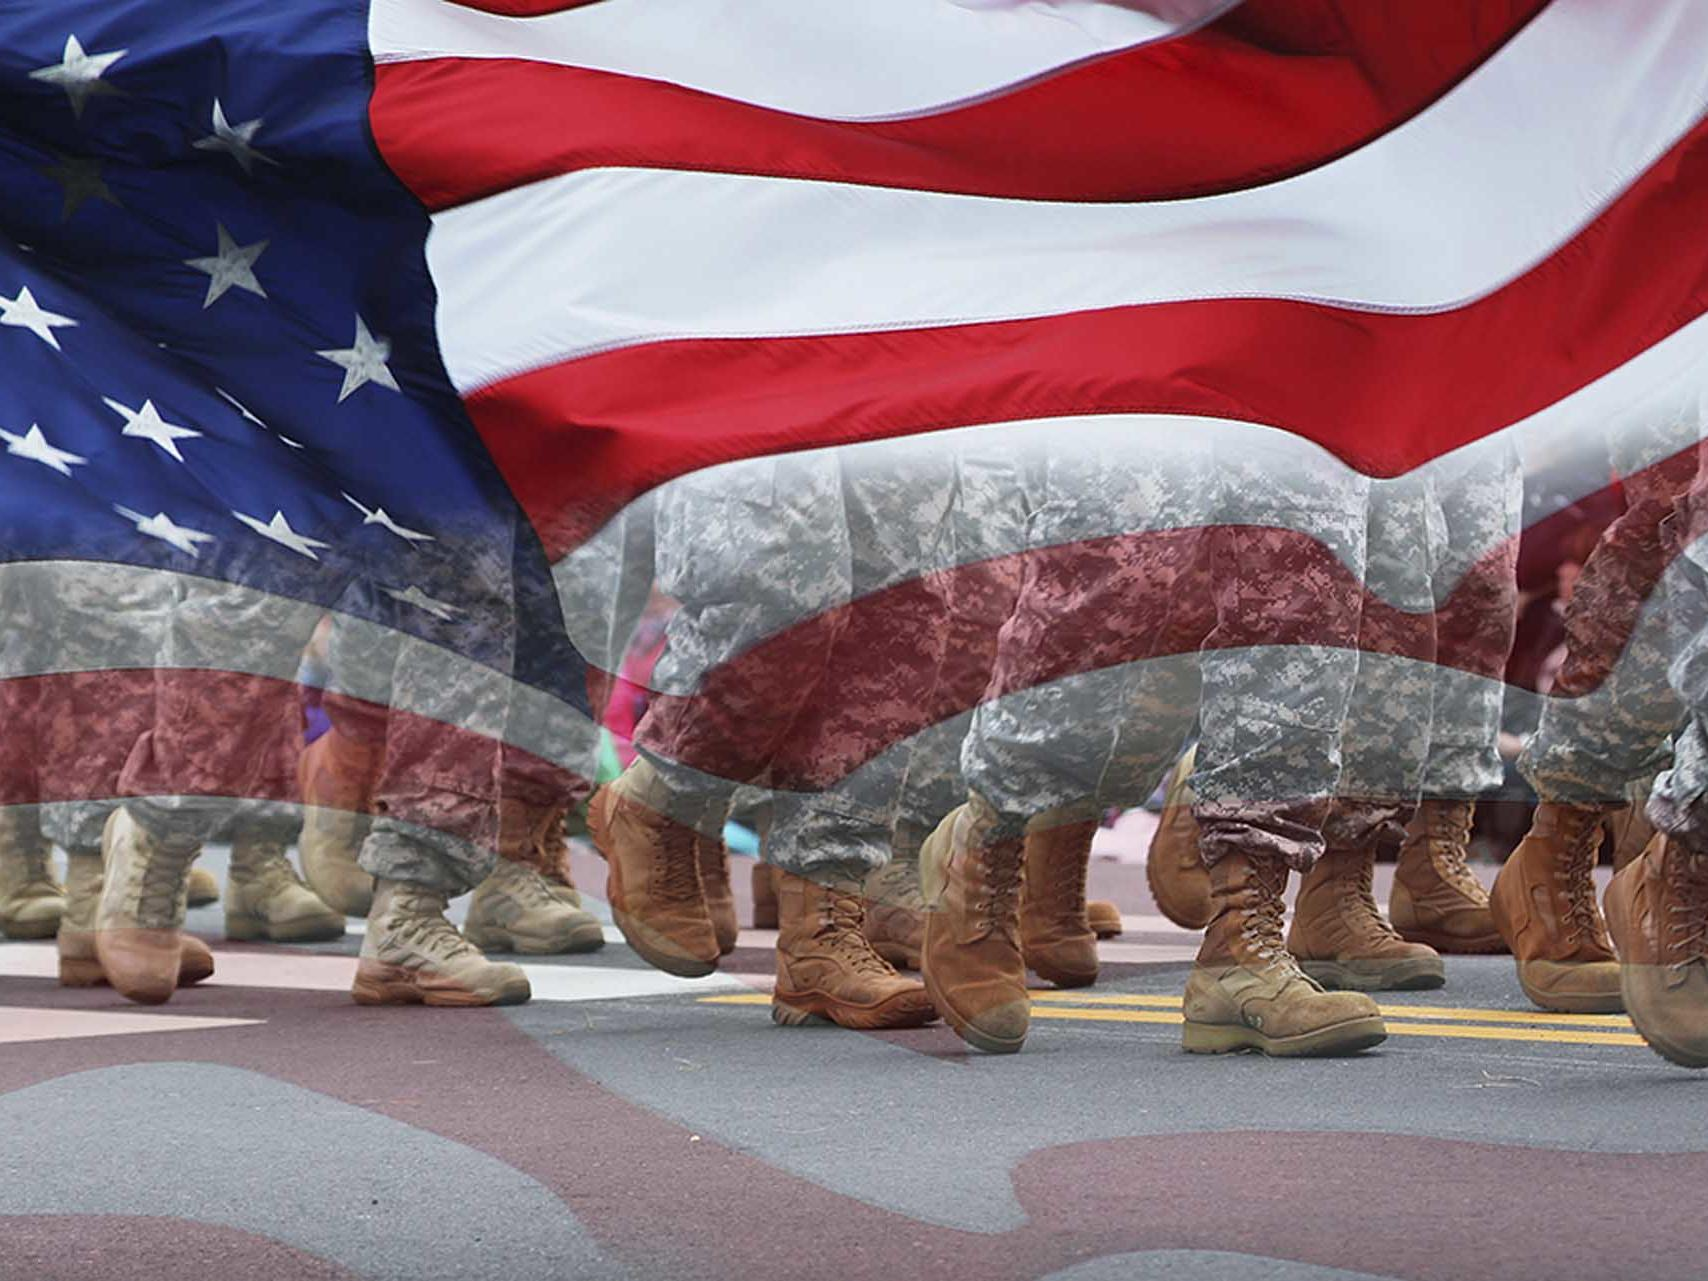 american flag overlayed army men boots